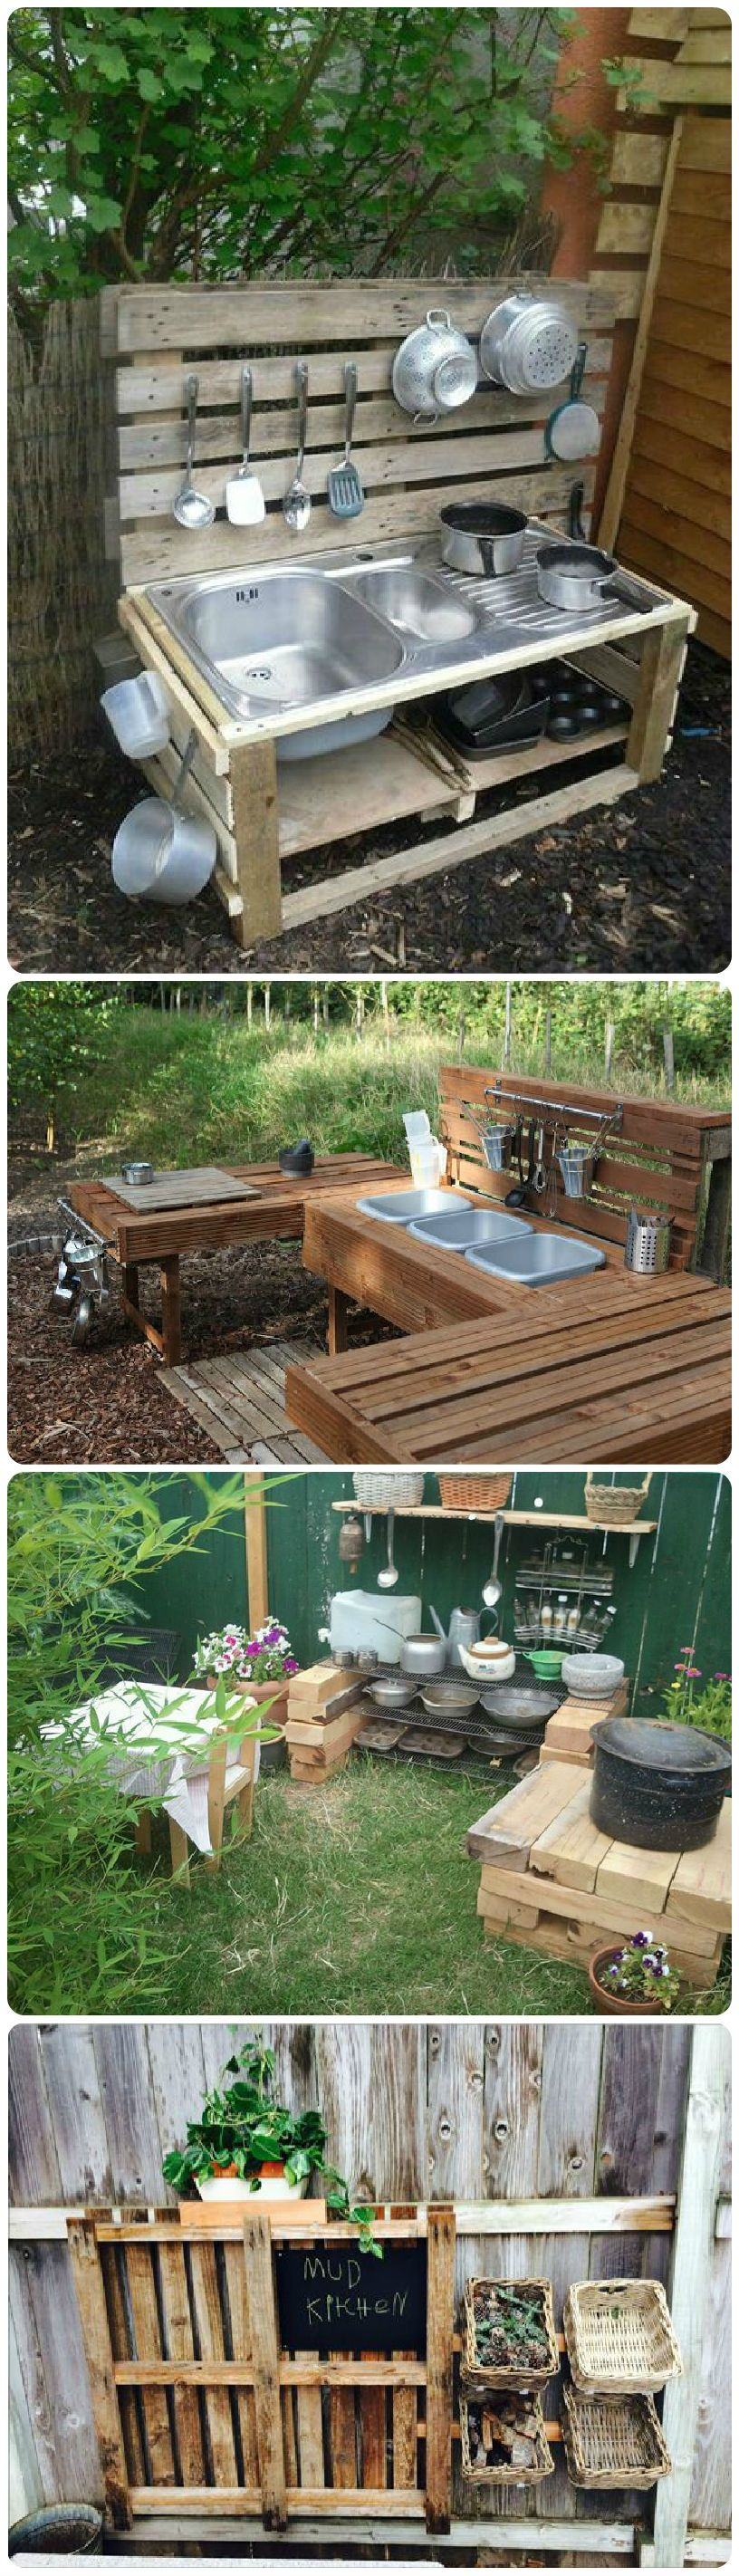 Top 20 of Mud Kitchen Ideas for Kids